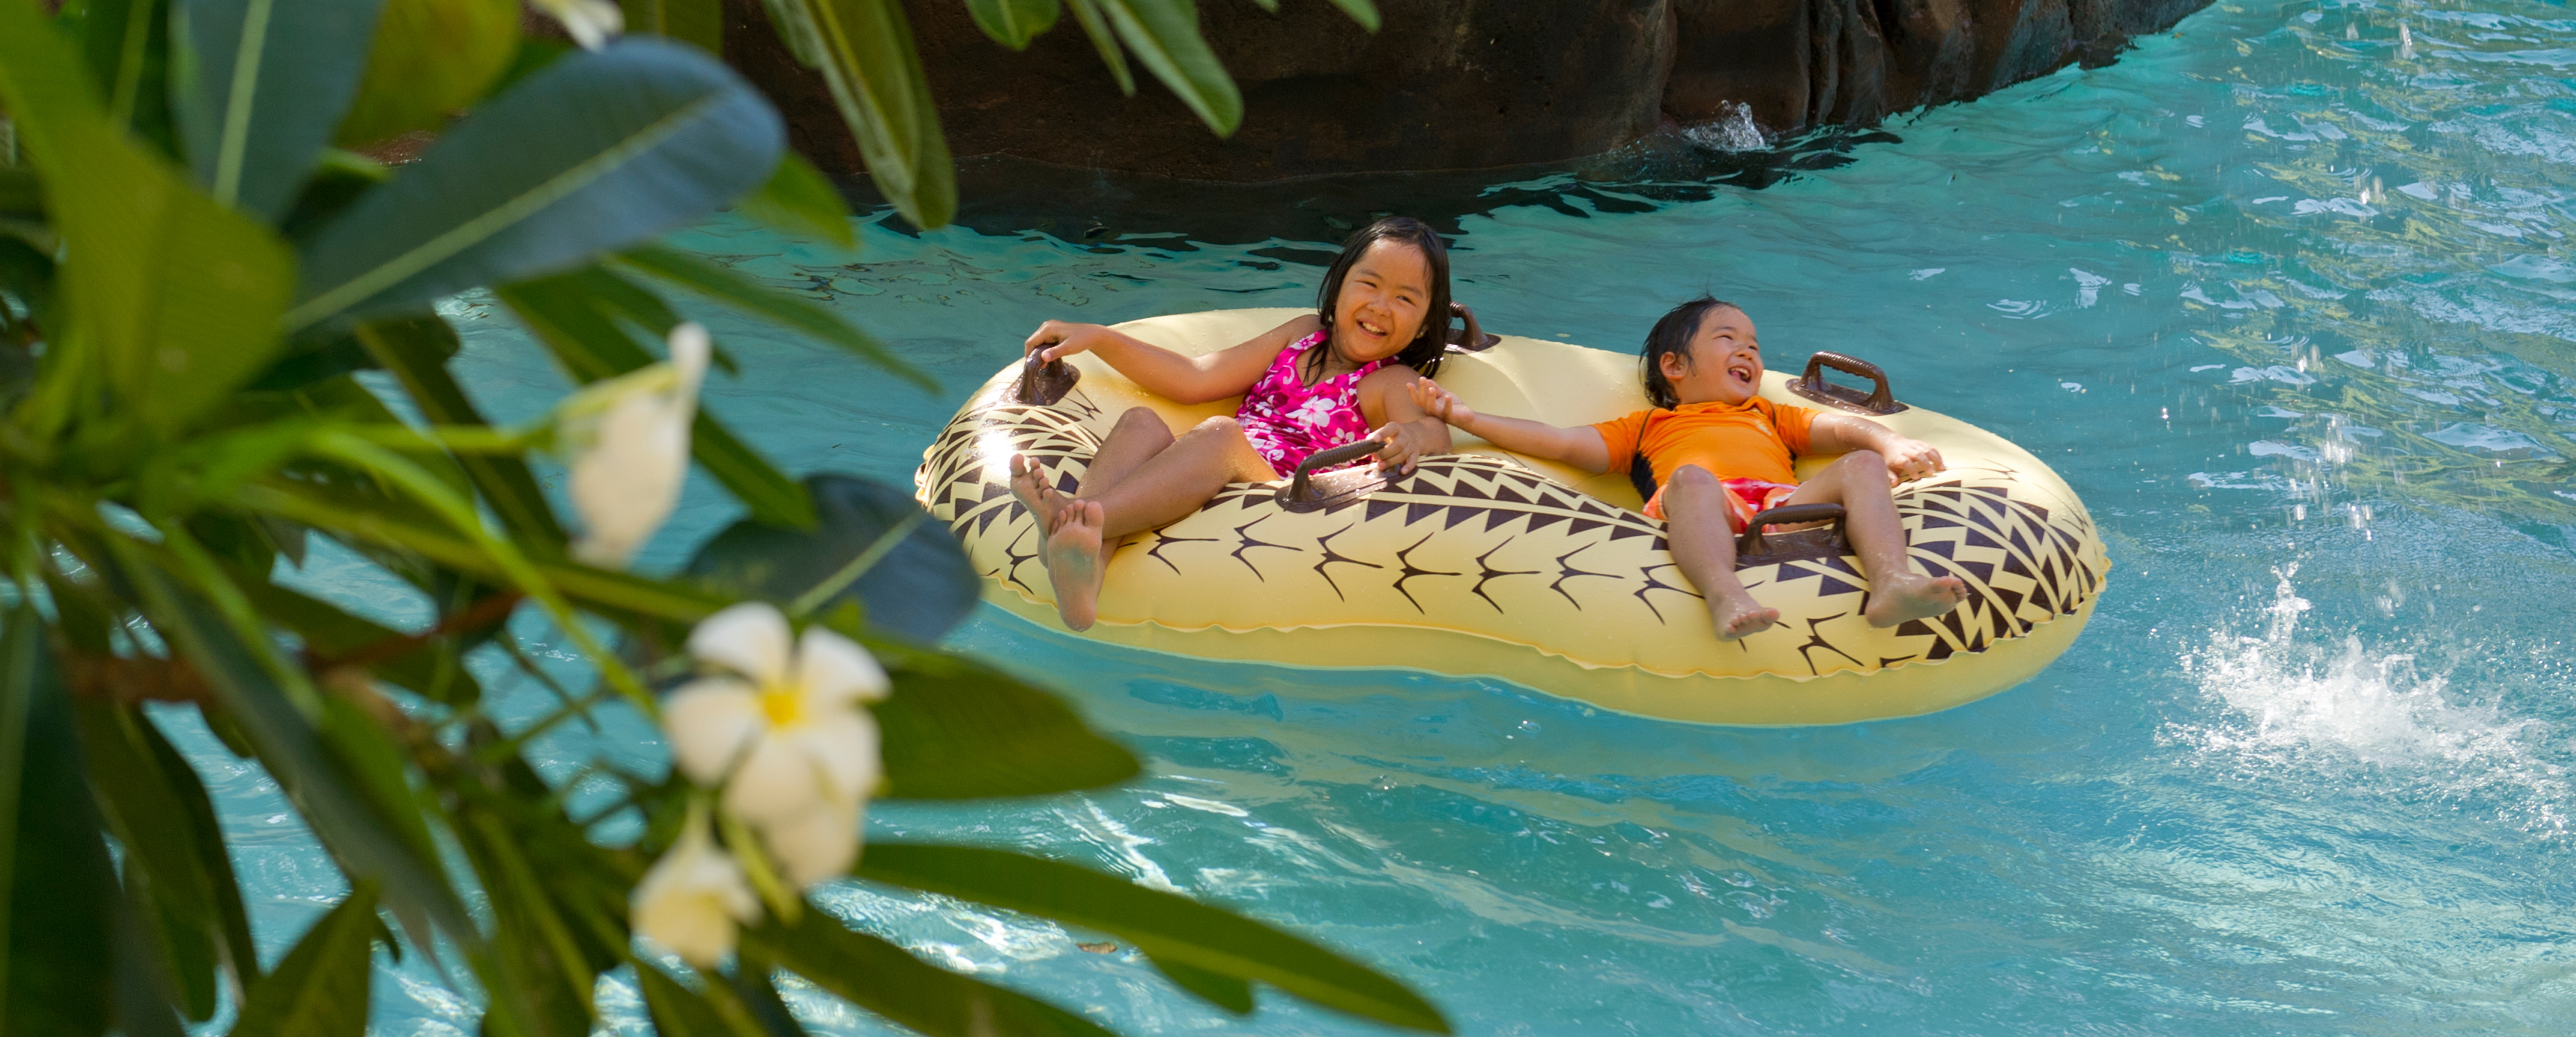 Children floating in a 2-person tube on the lazy river at Aulani